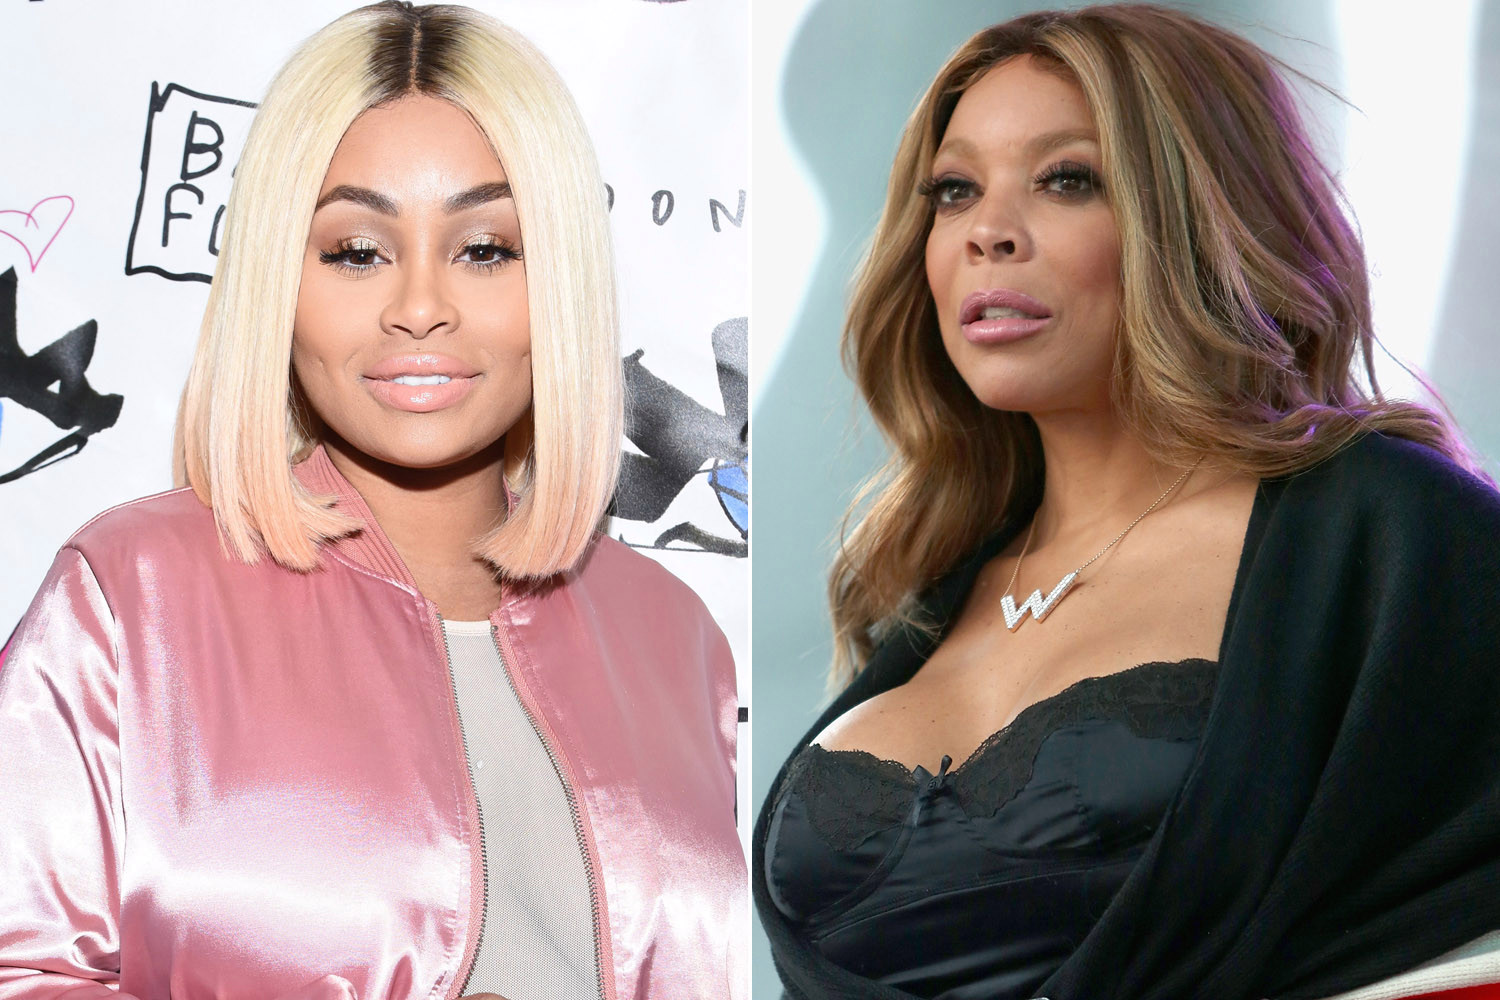 Blac Chyna Reveals Who Is the Better Lover: Rob Kardashian or Tyga